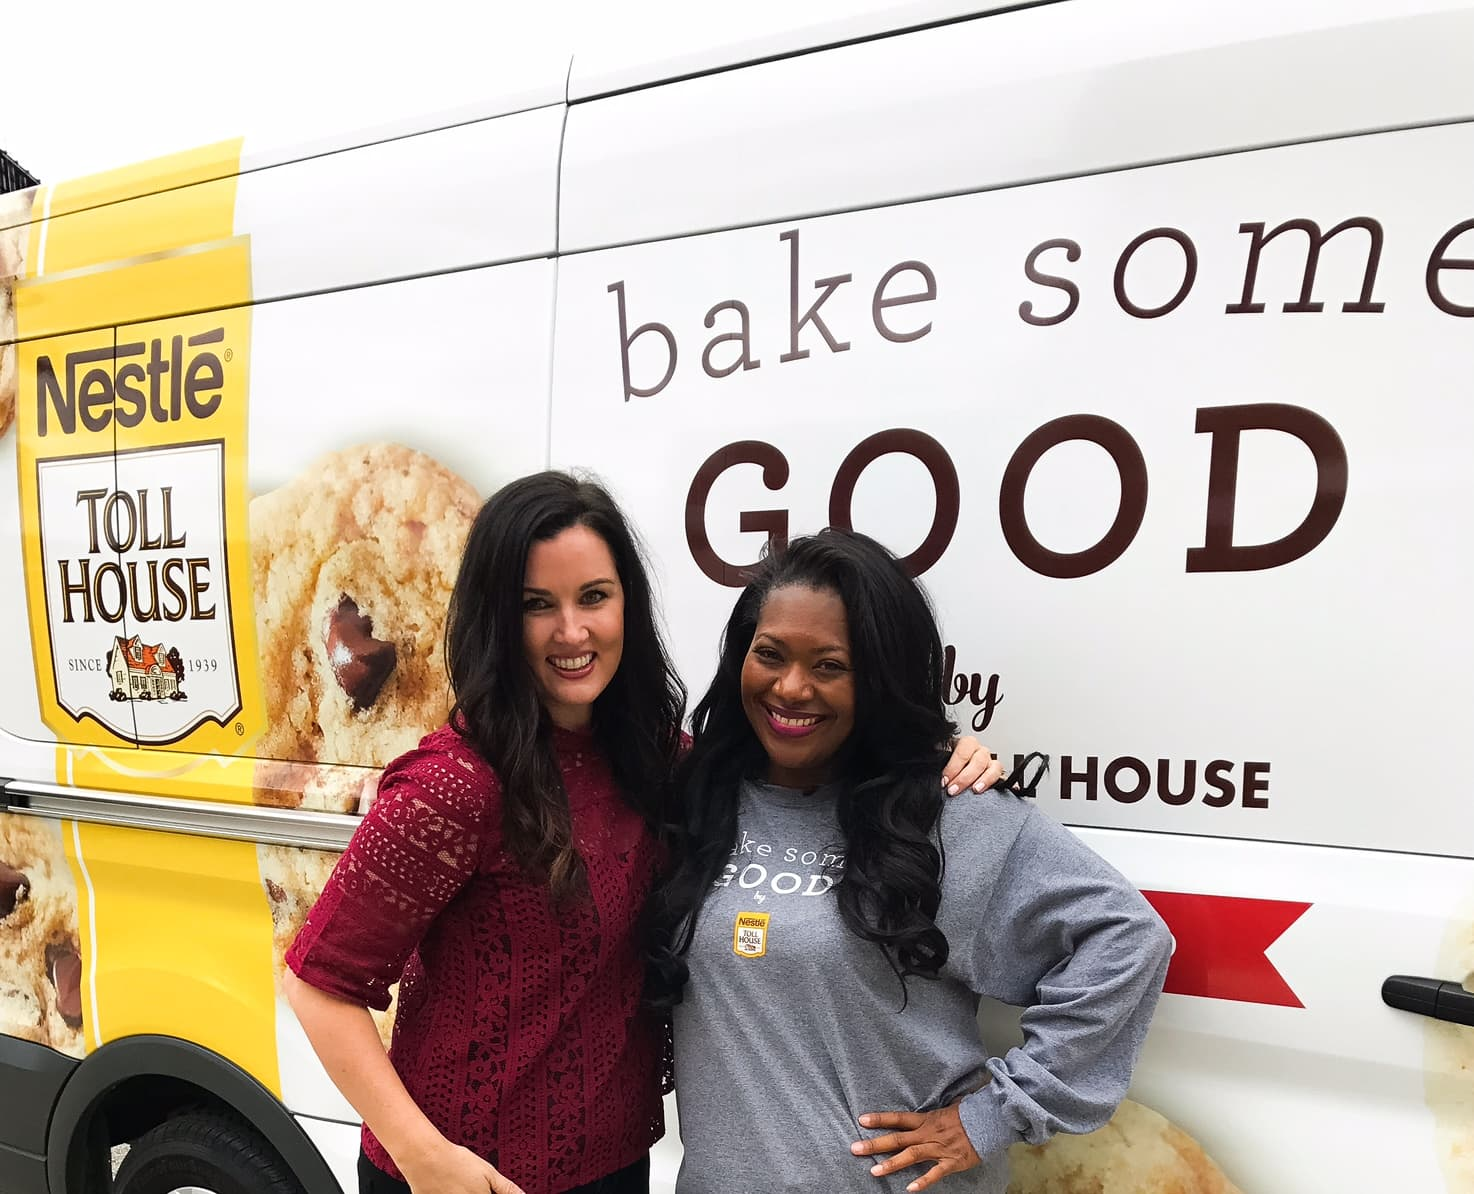 Bake Some Good by Nestle. Melissa Stadler and Cherise delivering baked goods in Chicago.